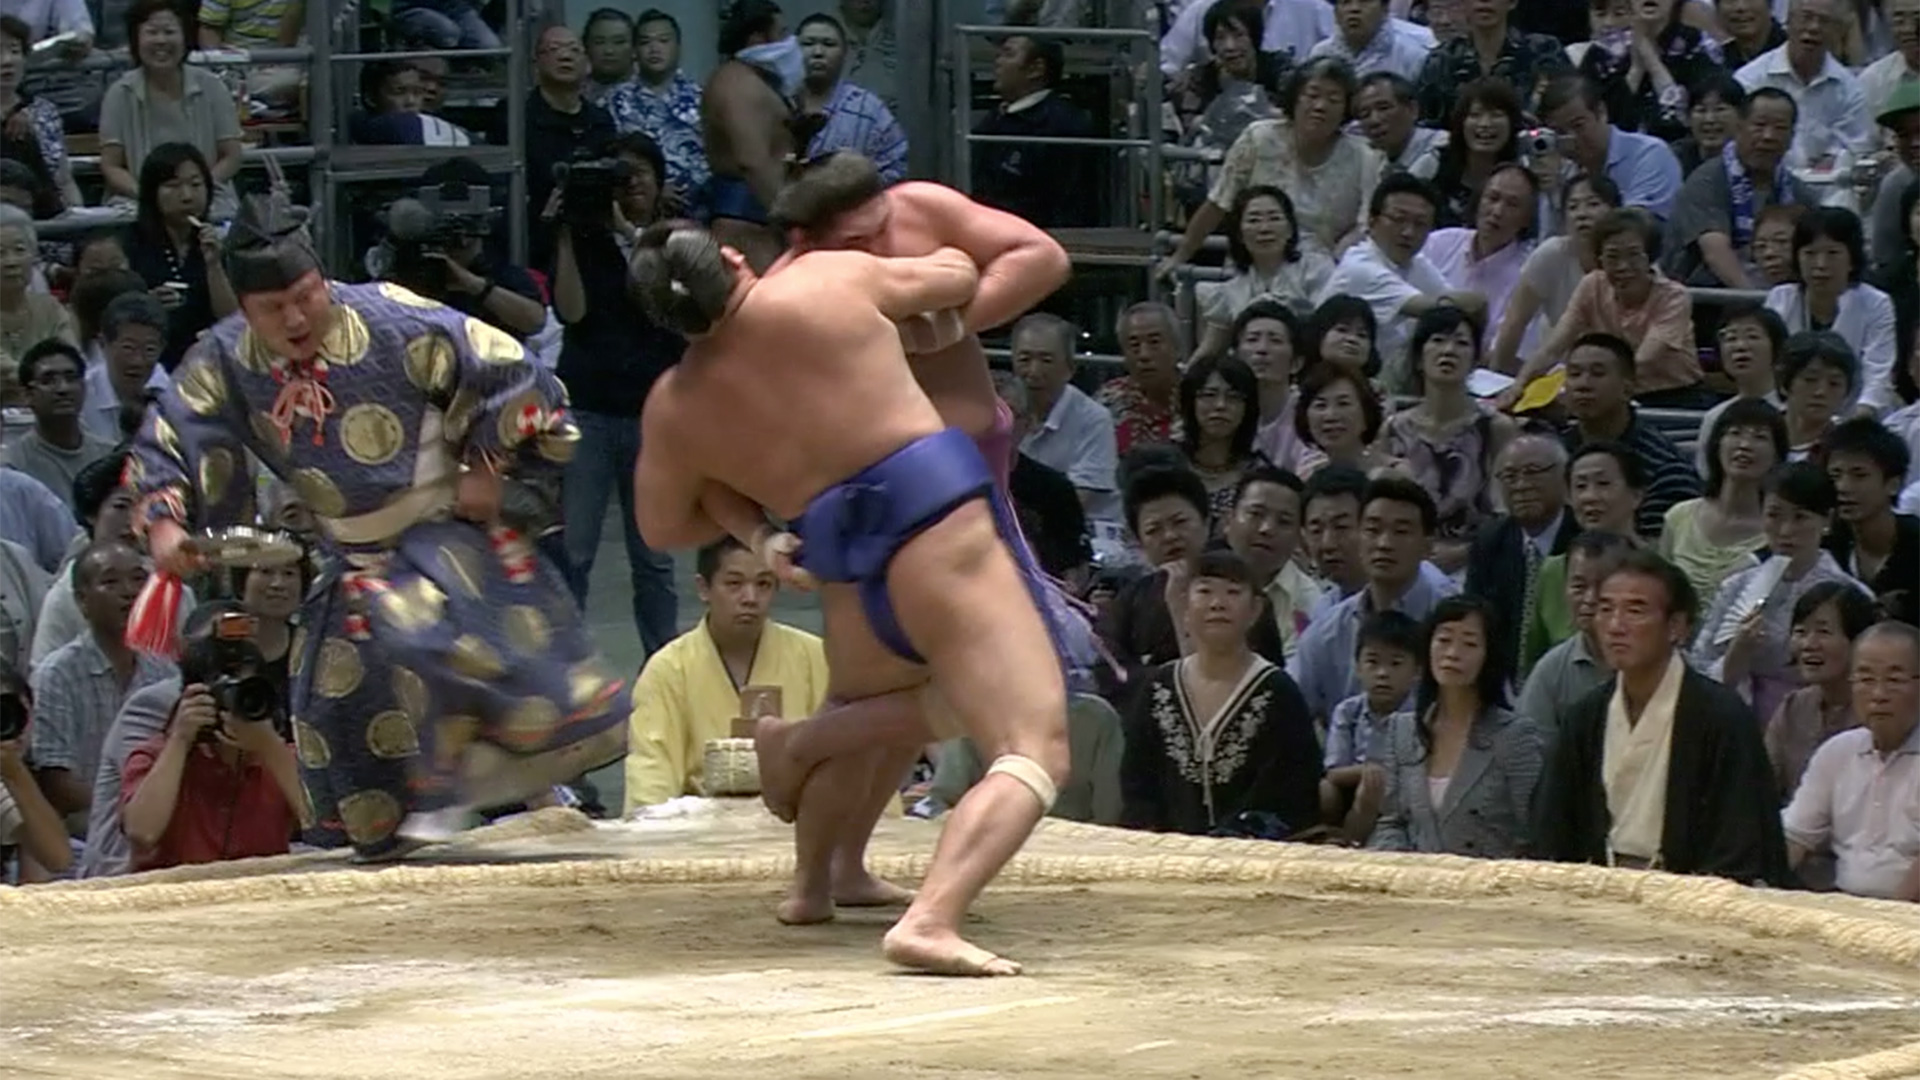 Kawazugake/ Hooking backward counter-throw